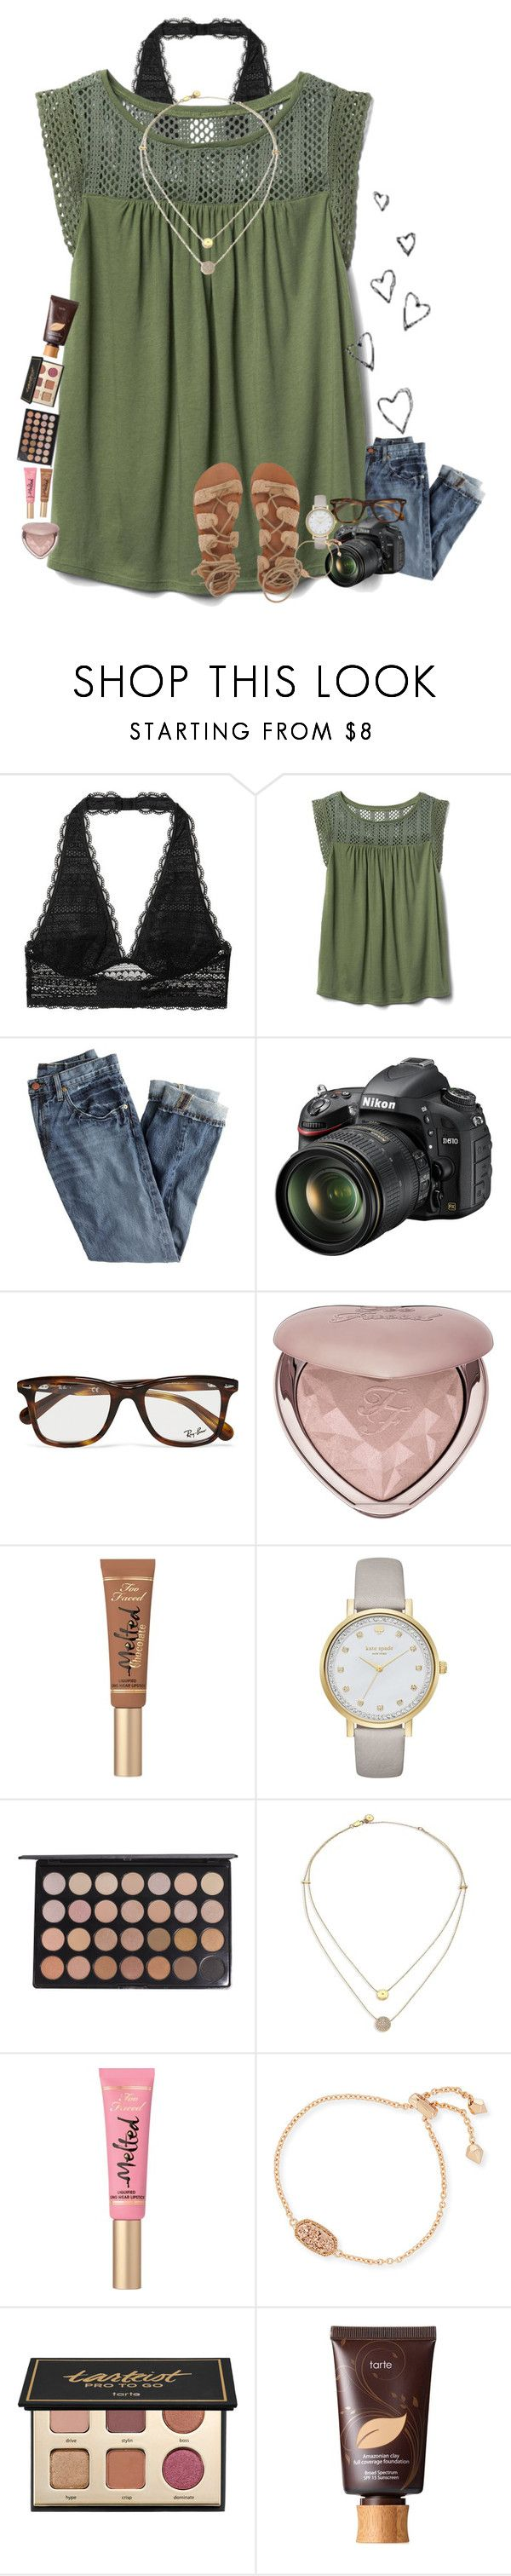 """""""Be confident"""" by amaya-leigh ❤ liked on Polyvore featuring Victoria's Secret, Gap, J.Crew, Brinley Co, Nikon, Ray-Ban, Too Faced Cosmetics, Kate Spade, Michael Kors and Kendra Scott"""